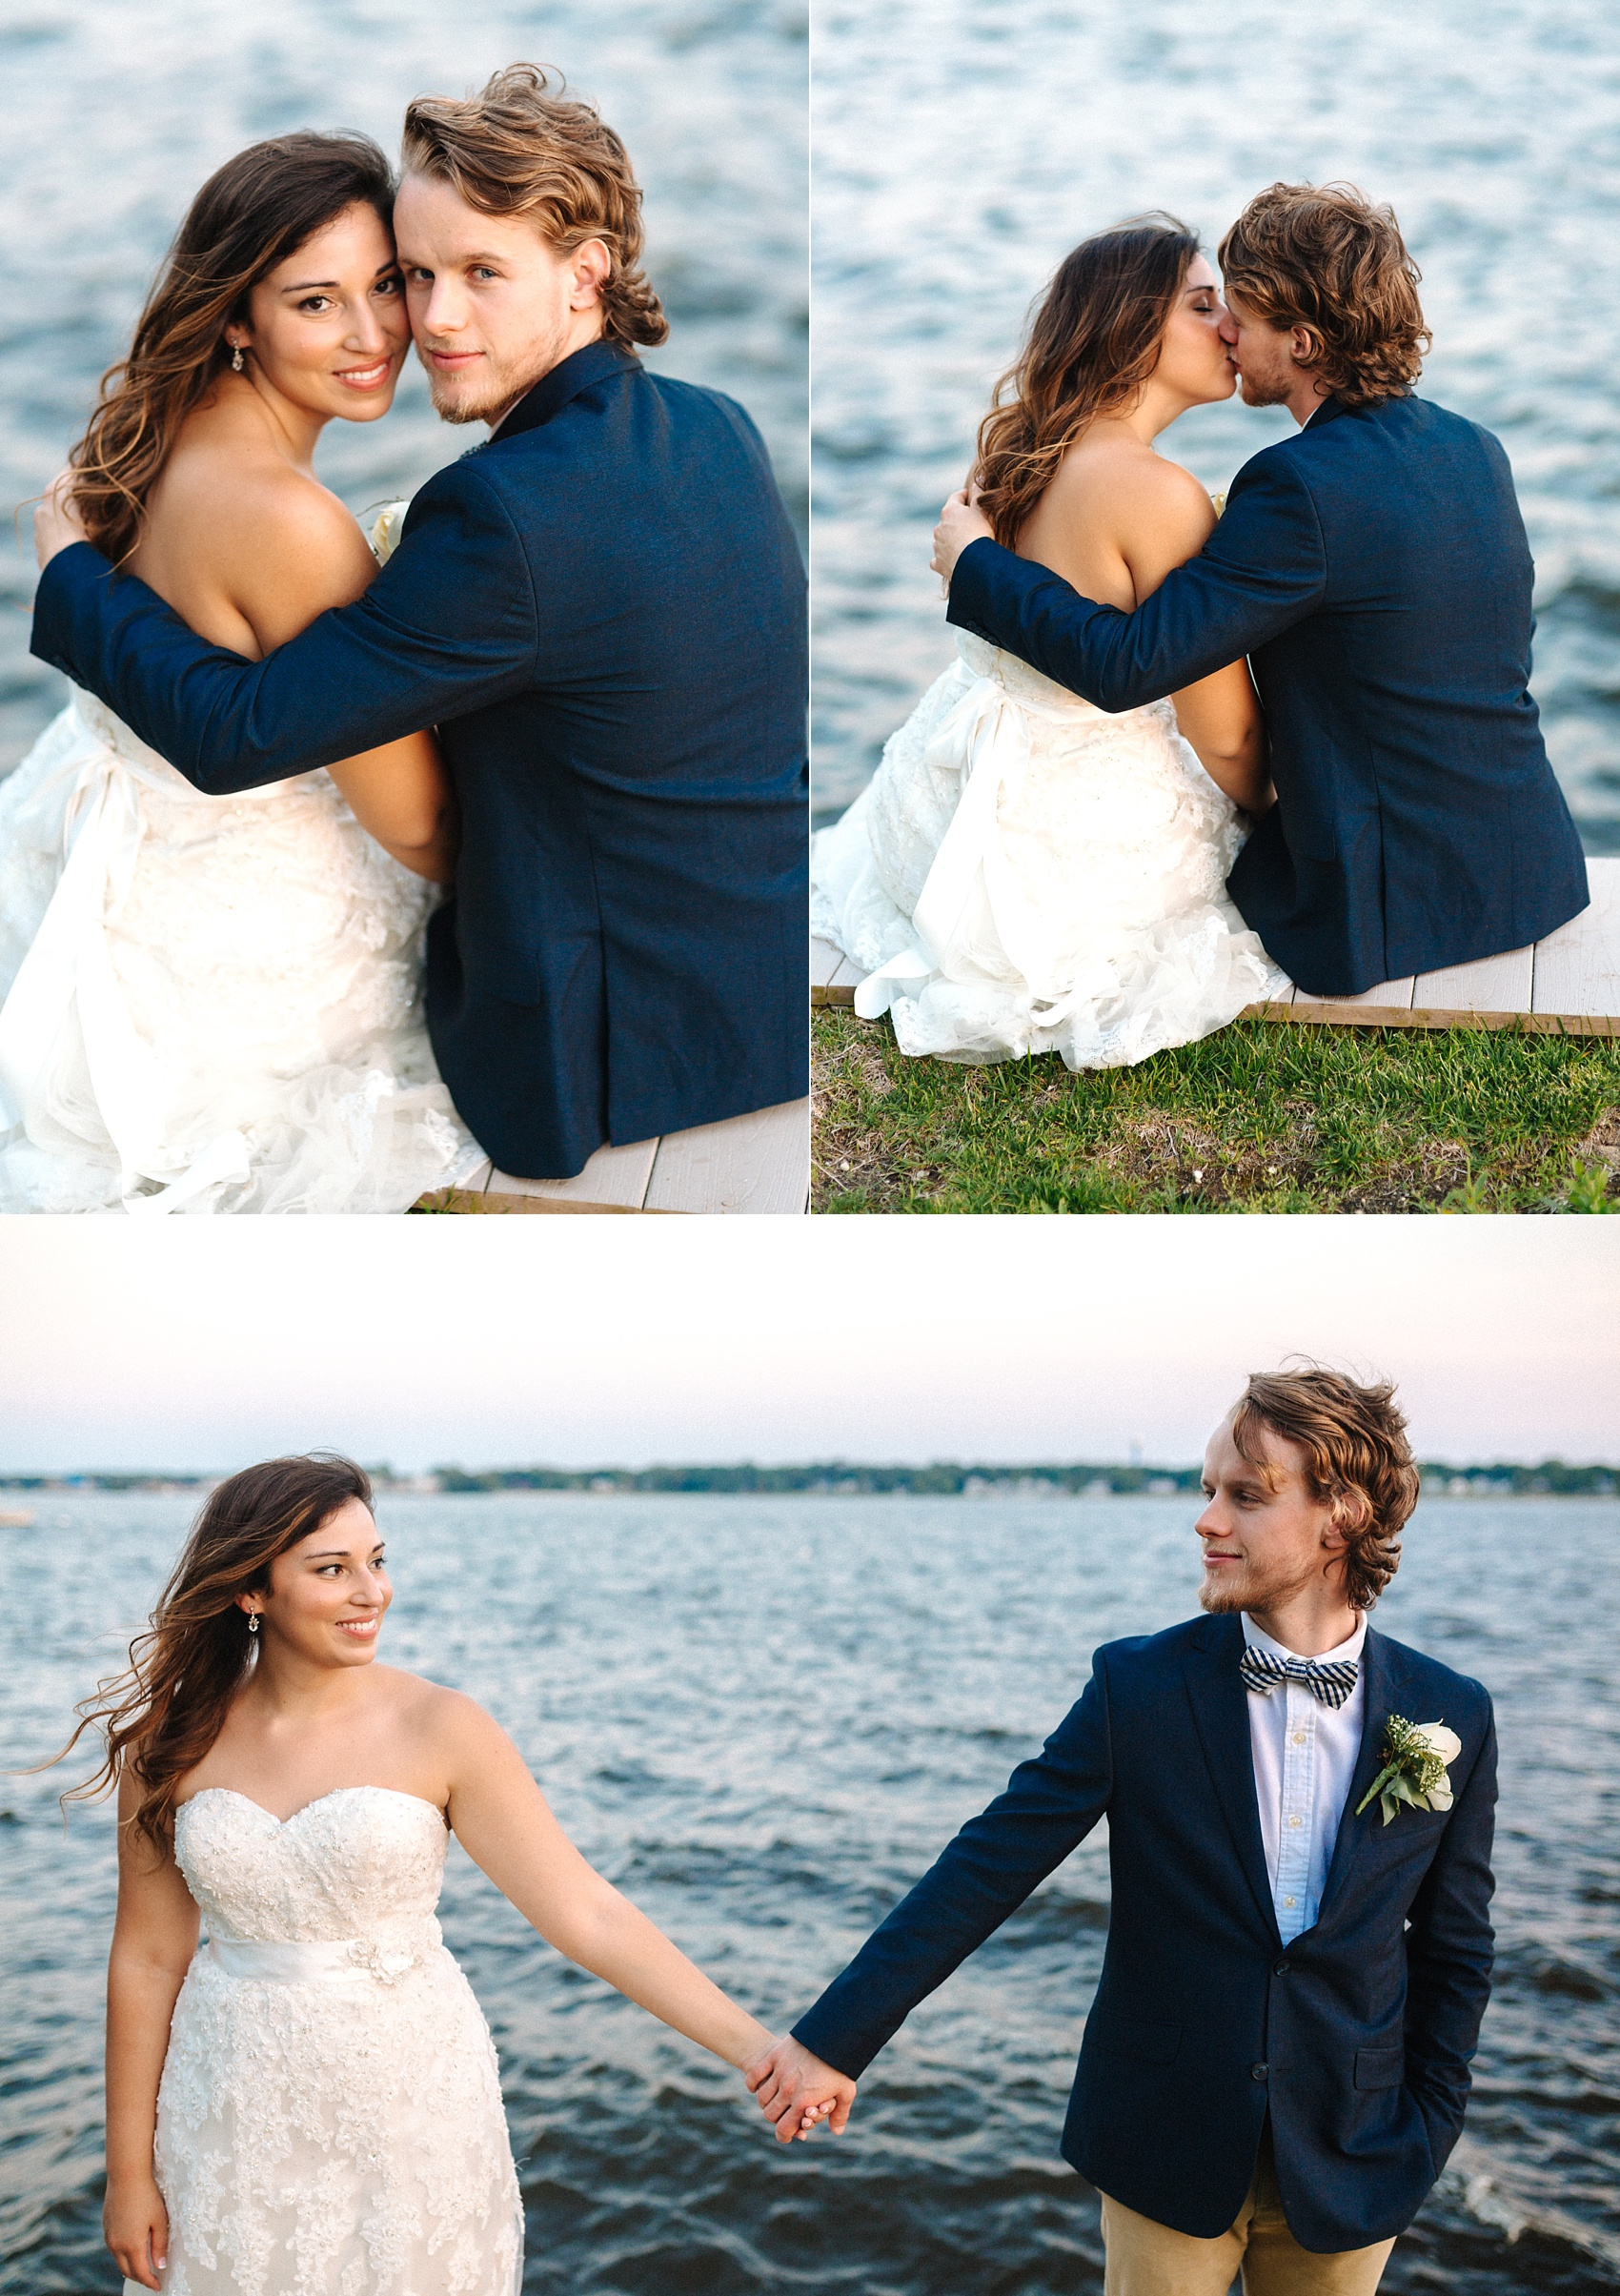 jake and katie photography toms river new jersery wedding jesse drea-31